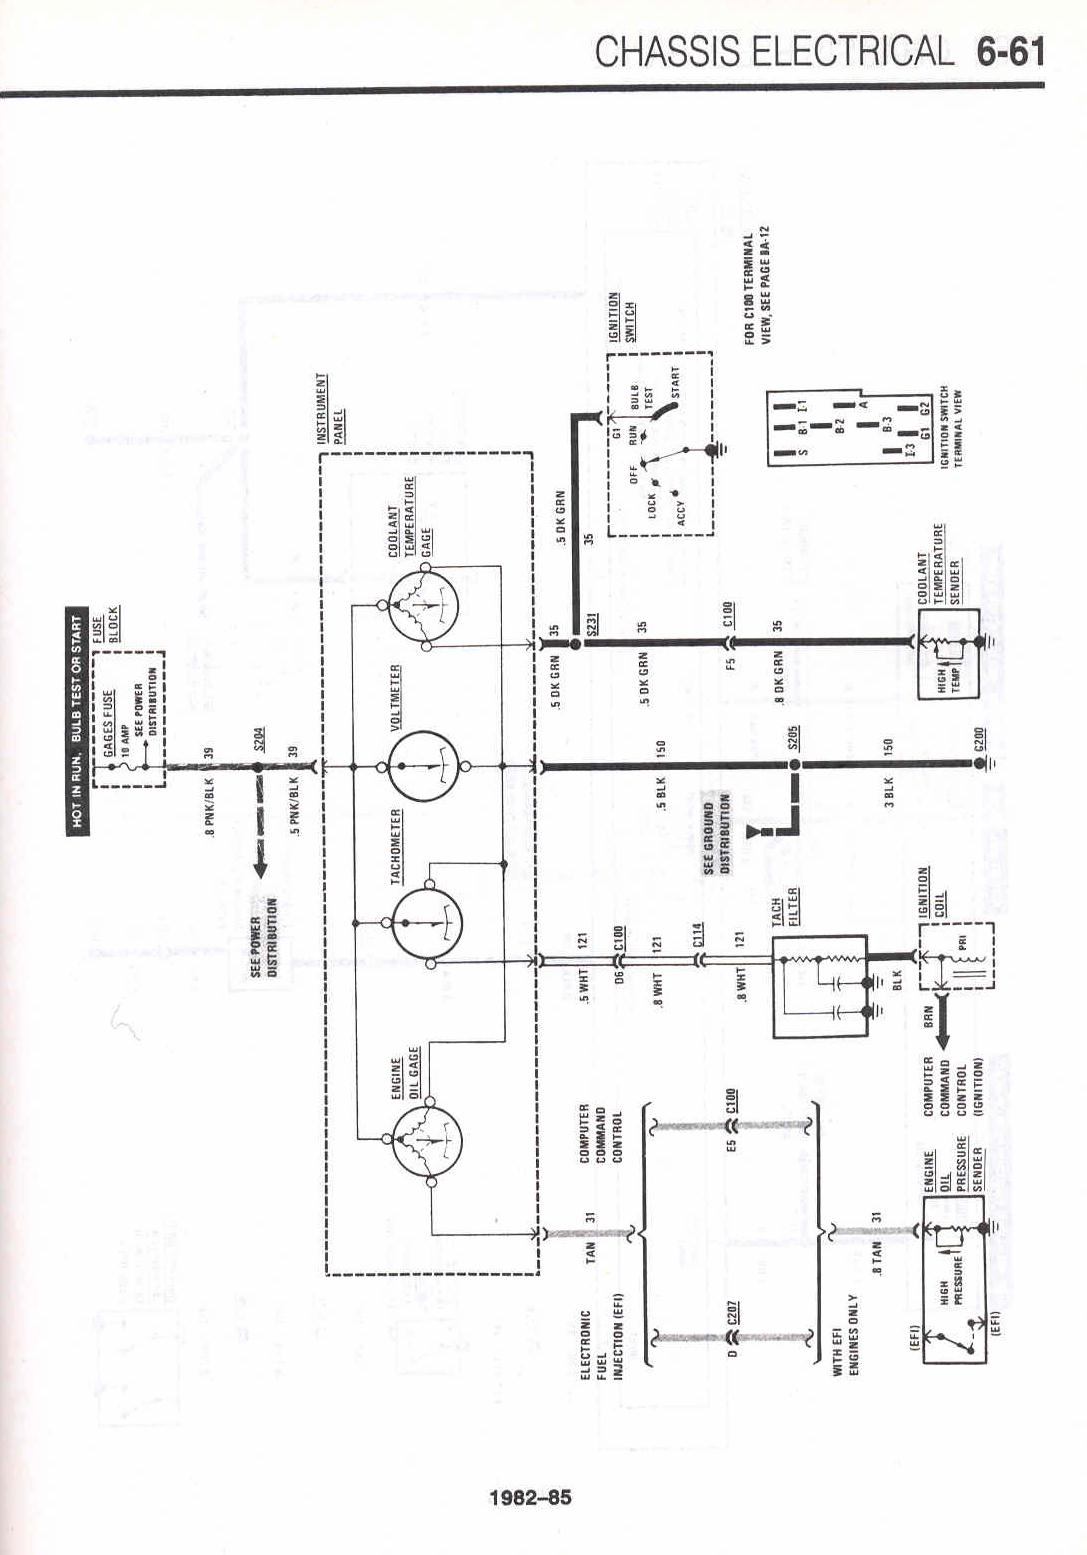 85 Camaro Dash Wiring Diagram Library Toyota 22r Engine Water Get Free Image About Oil Pressure Tach Coolant Temp